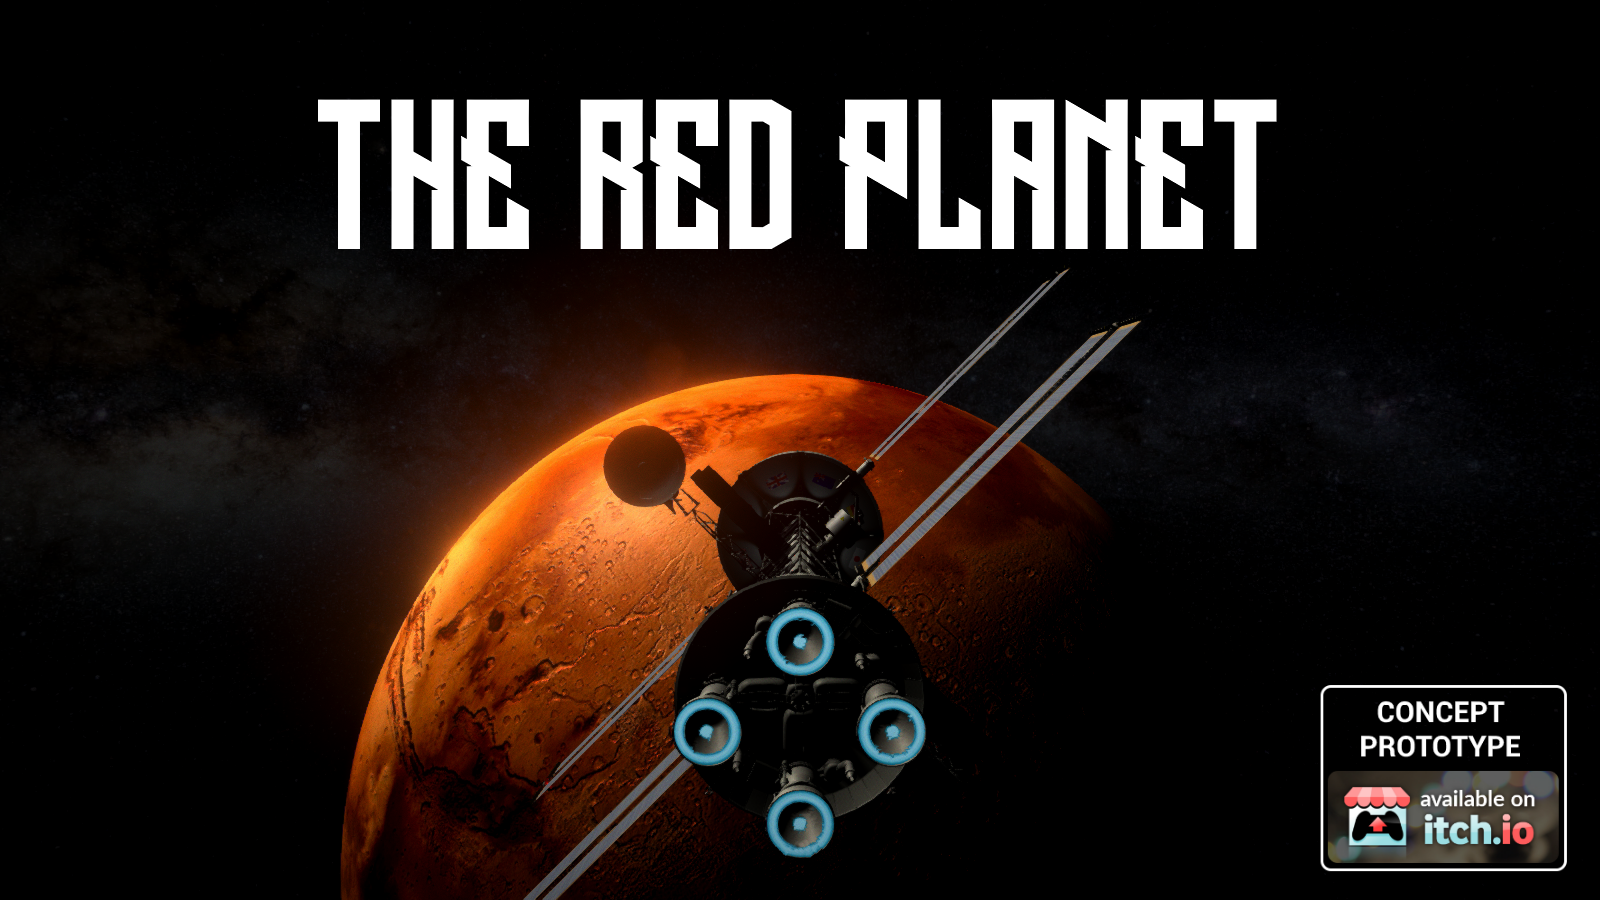 The Red Planet (Concept Prototype)